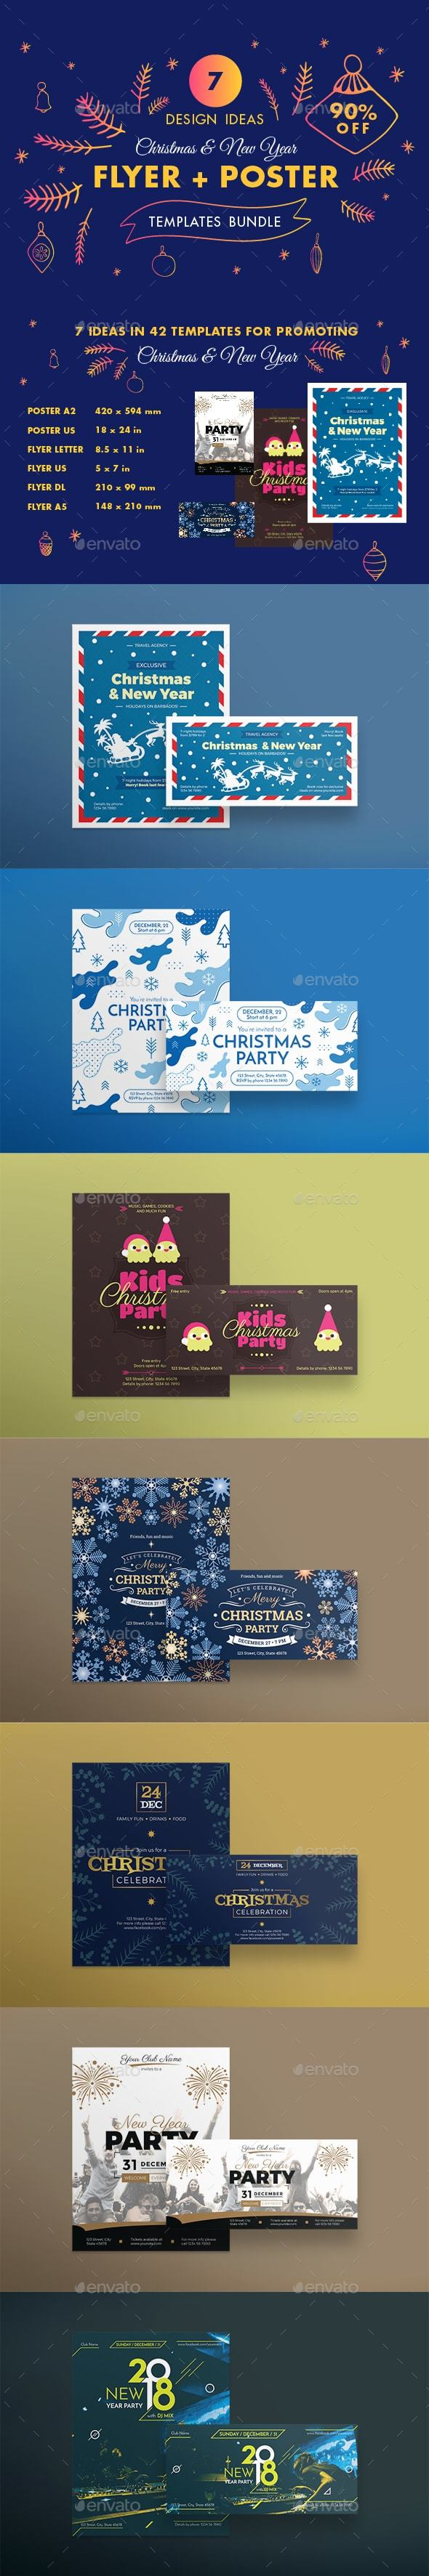 Christmas Flyer Poster Design Templates Bundle - Holidays Events